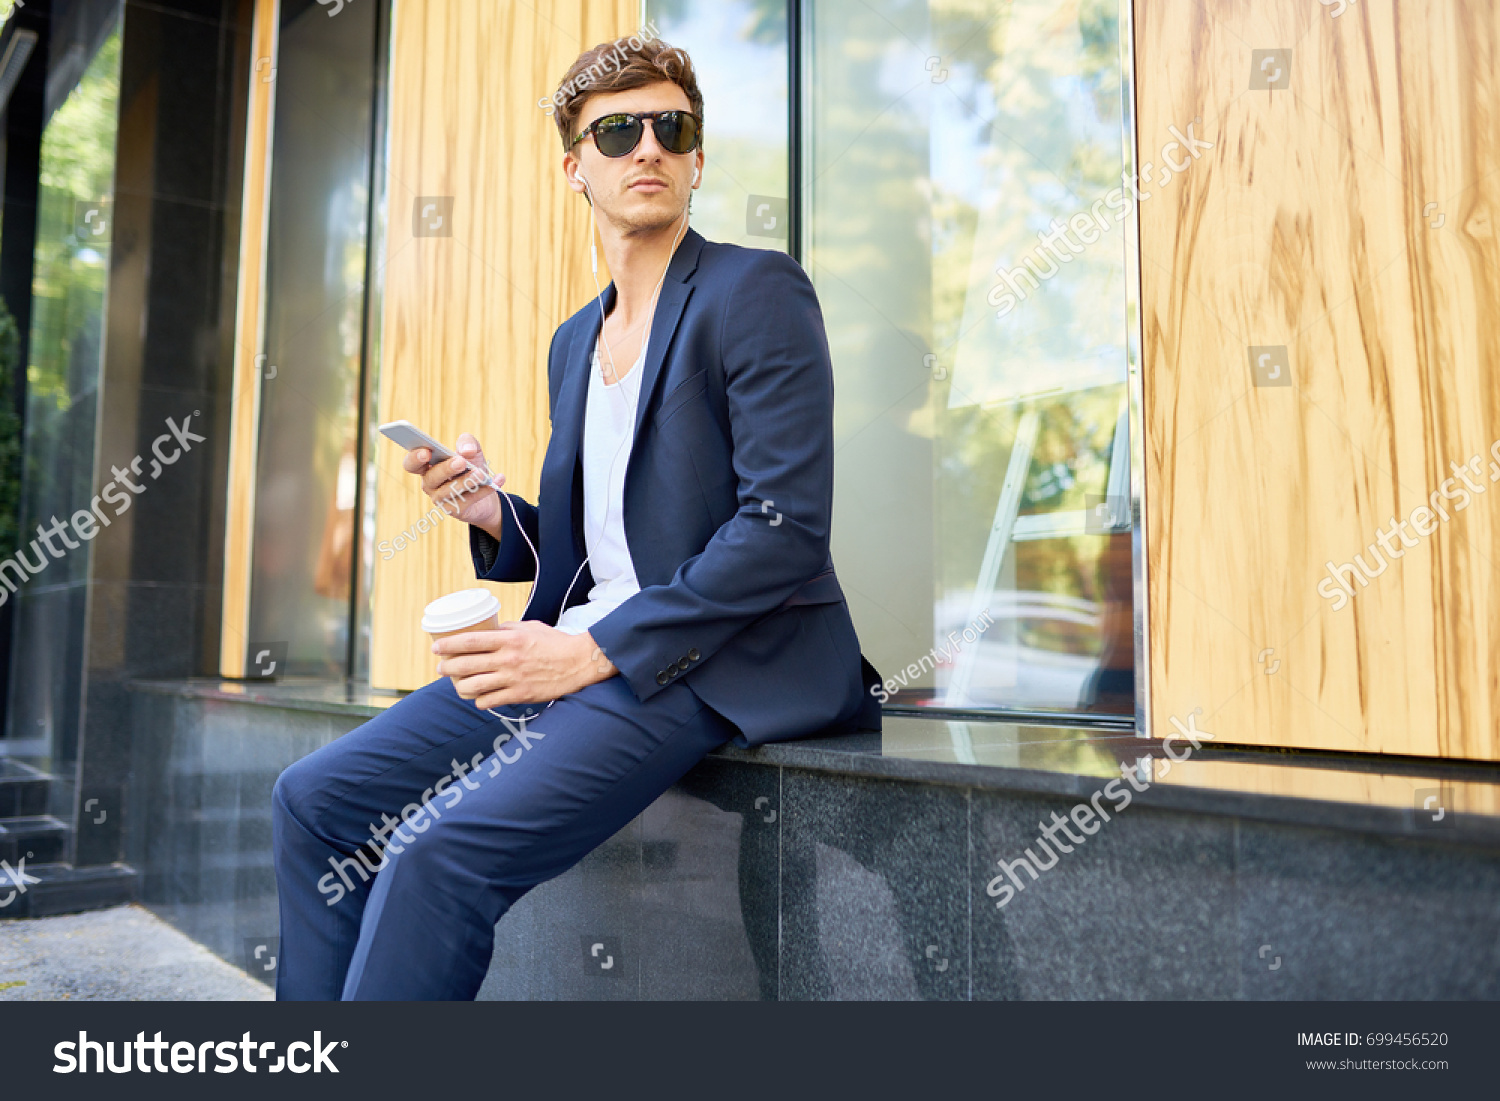 Portrait Of Handsome Young Man Posing Using Smartphone Outdoors Enjoying Coffee Break